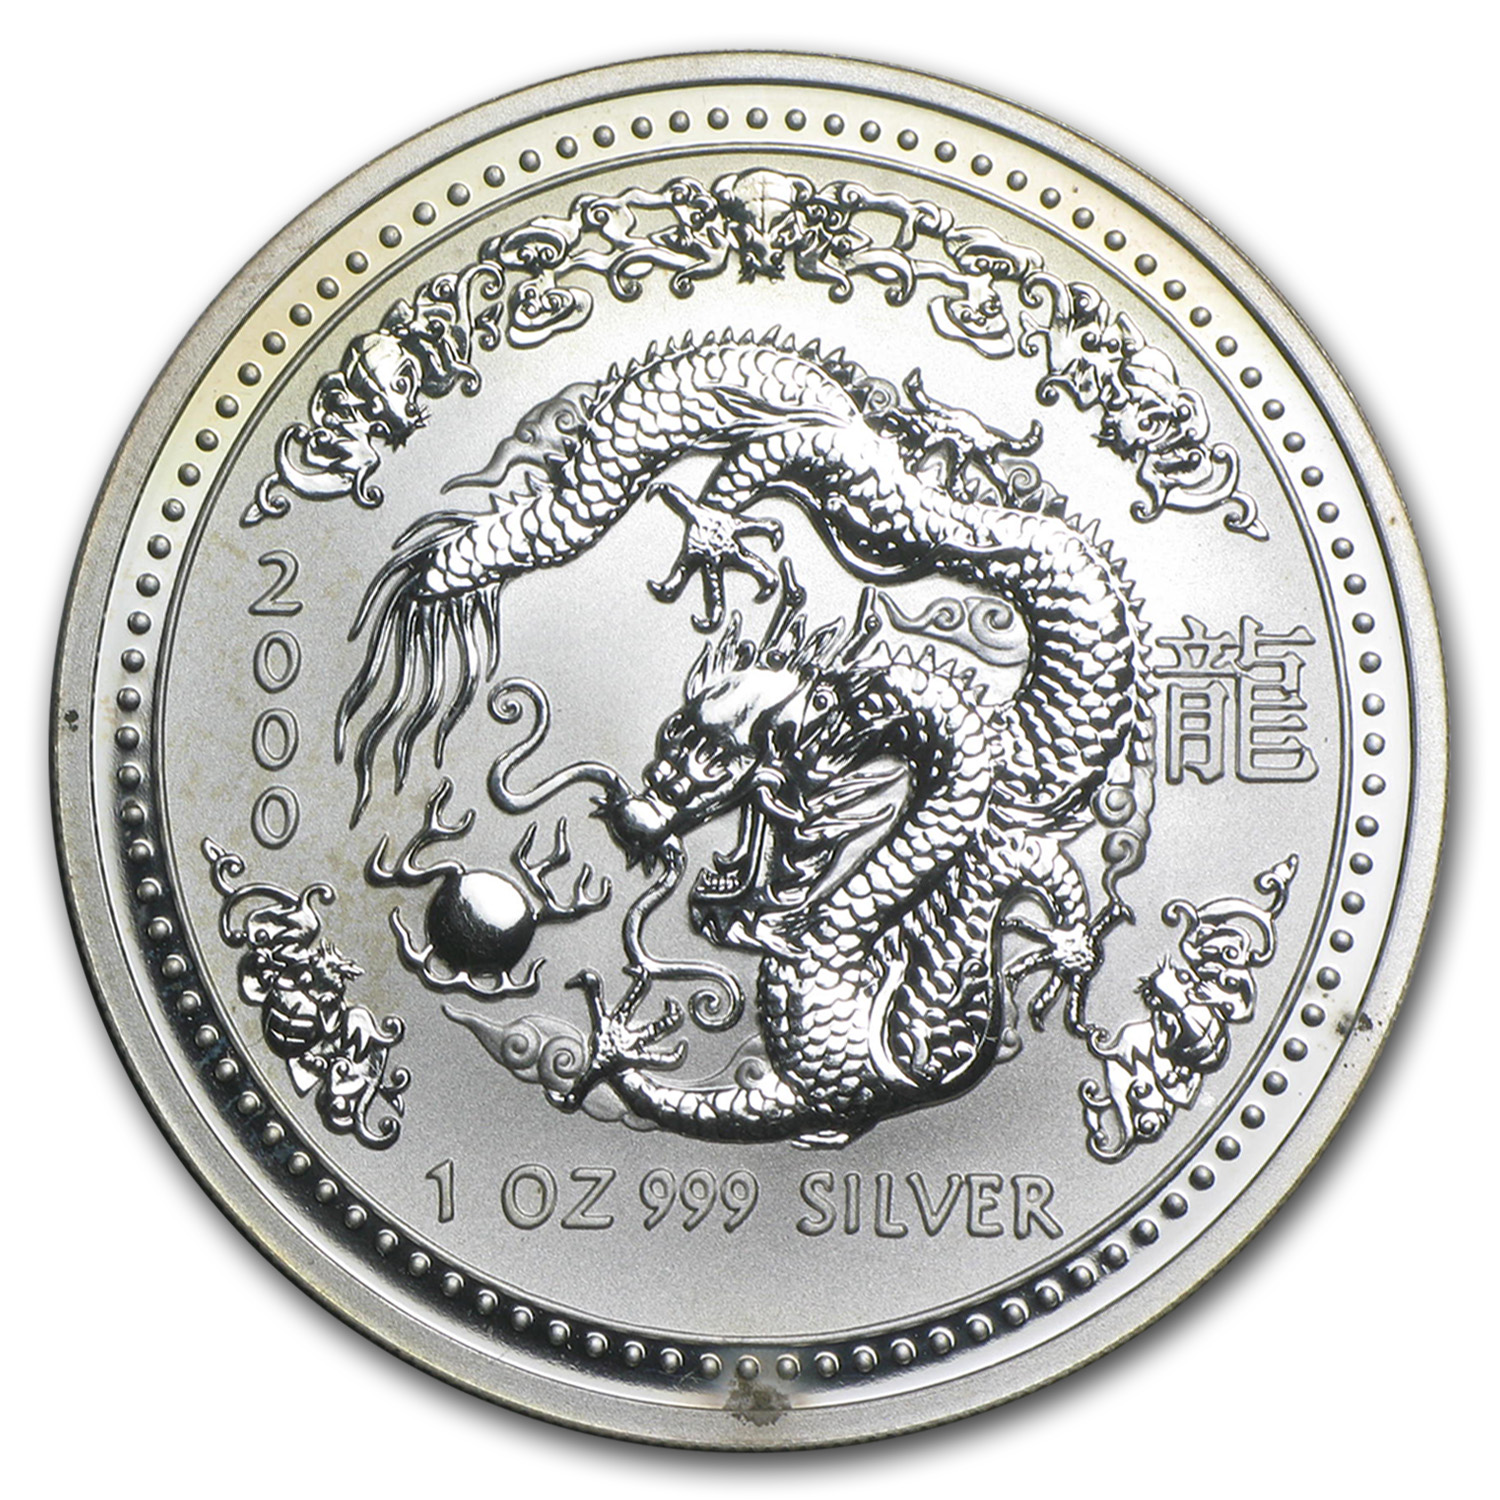 2000 1 oz Silver Lunar Year of the Dragon Series I (Abrasions)